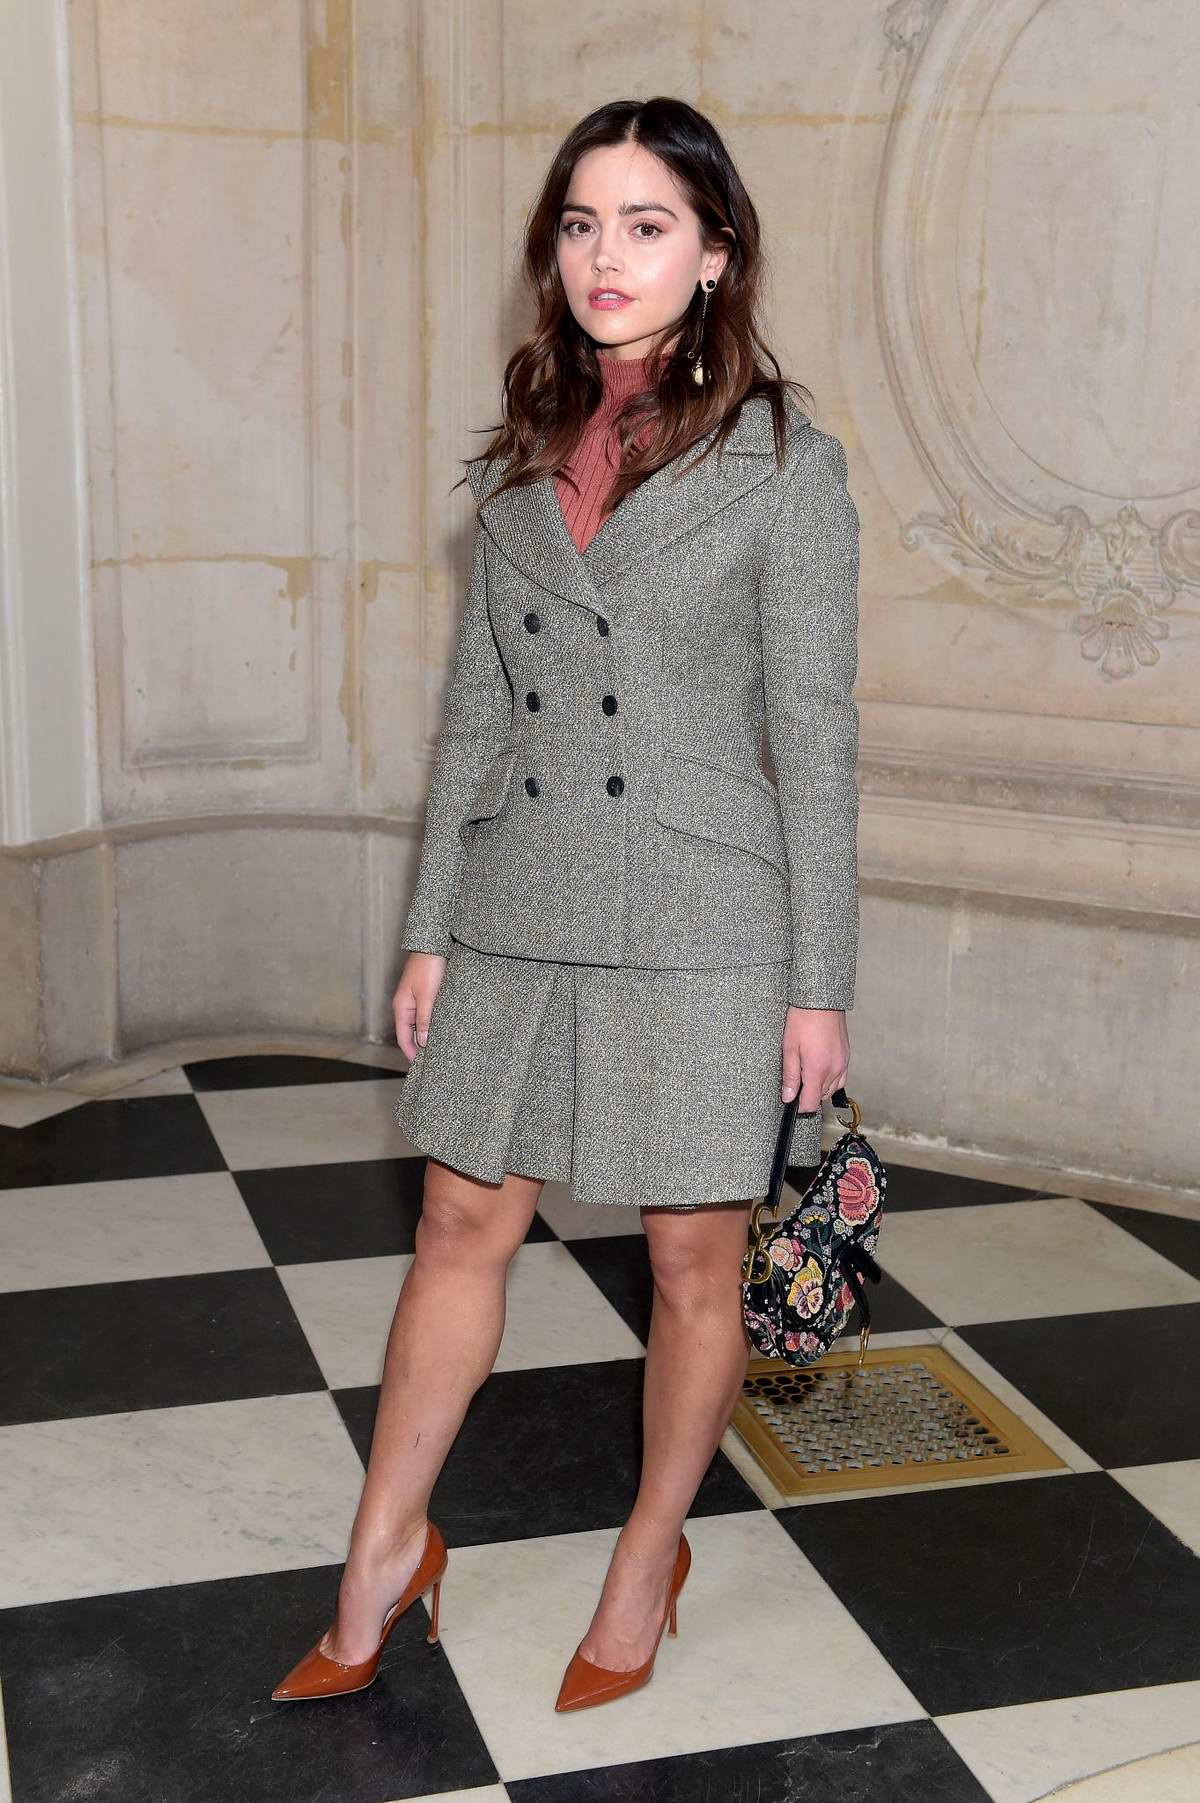 Jenna Coleman attends the Christian Dior show during Paris Fashion Week Womenswear Fall/Winter 2019/2020 in Paris, France